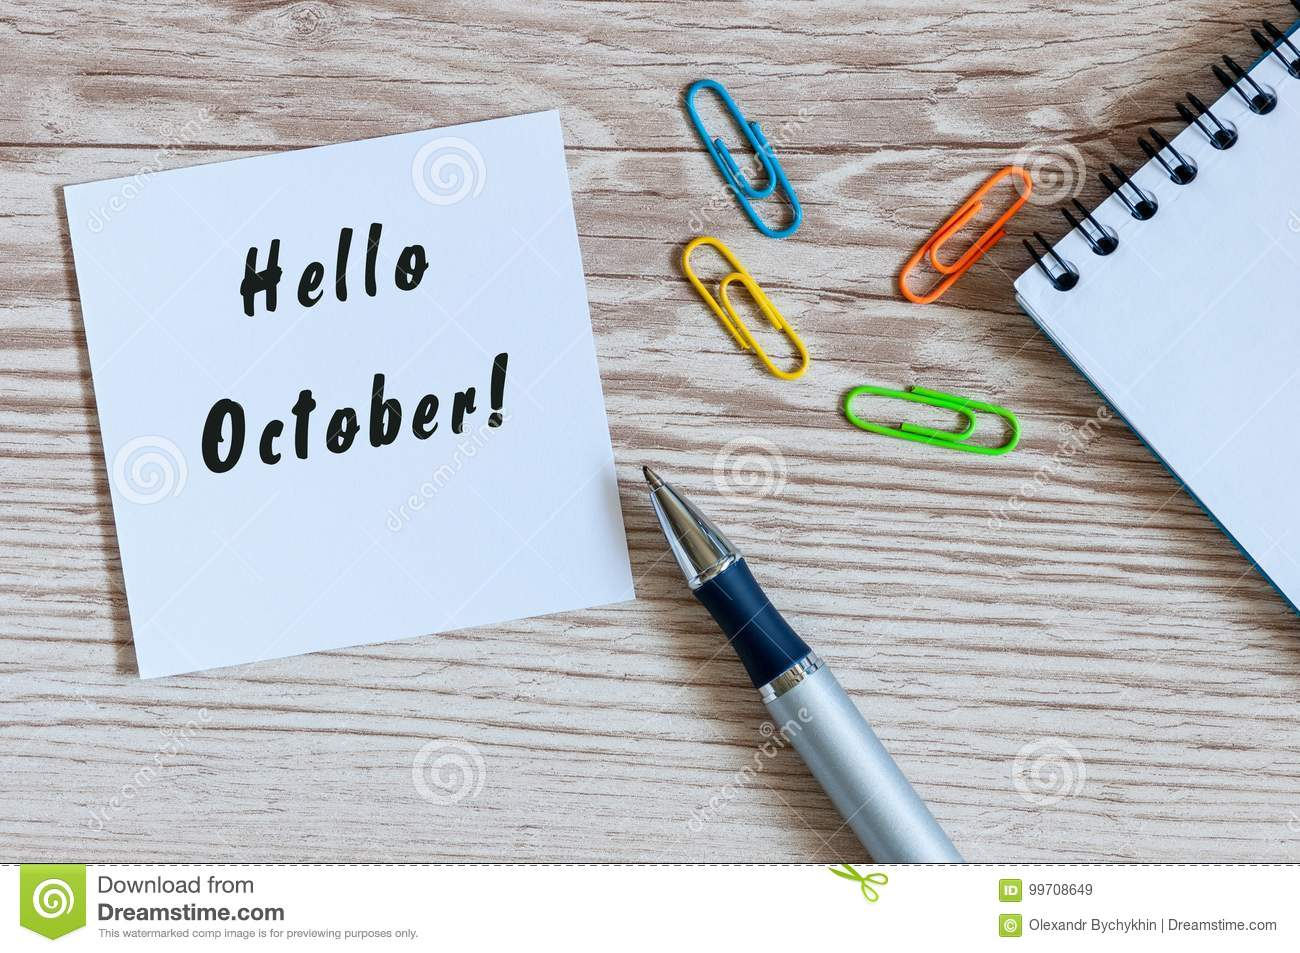 paper with words hello october and office suplies lying on wooden